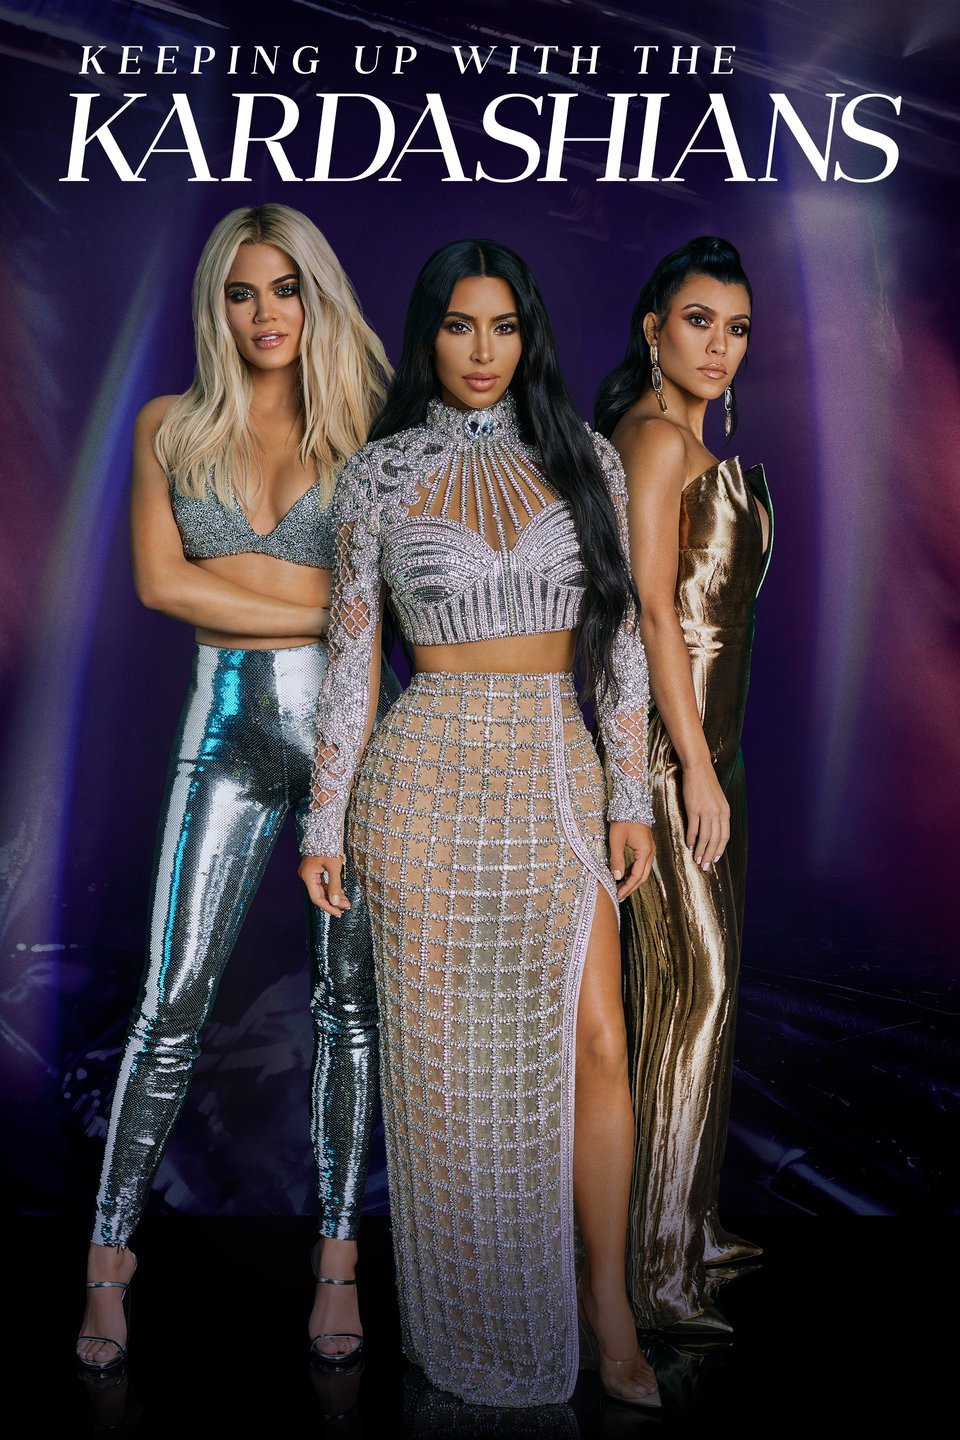 Image result for keeping up with the kardashians posters